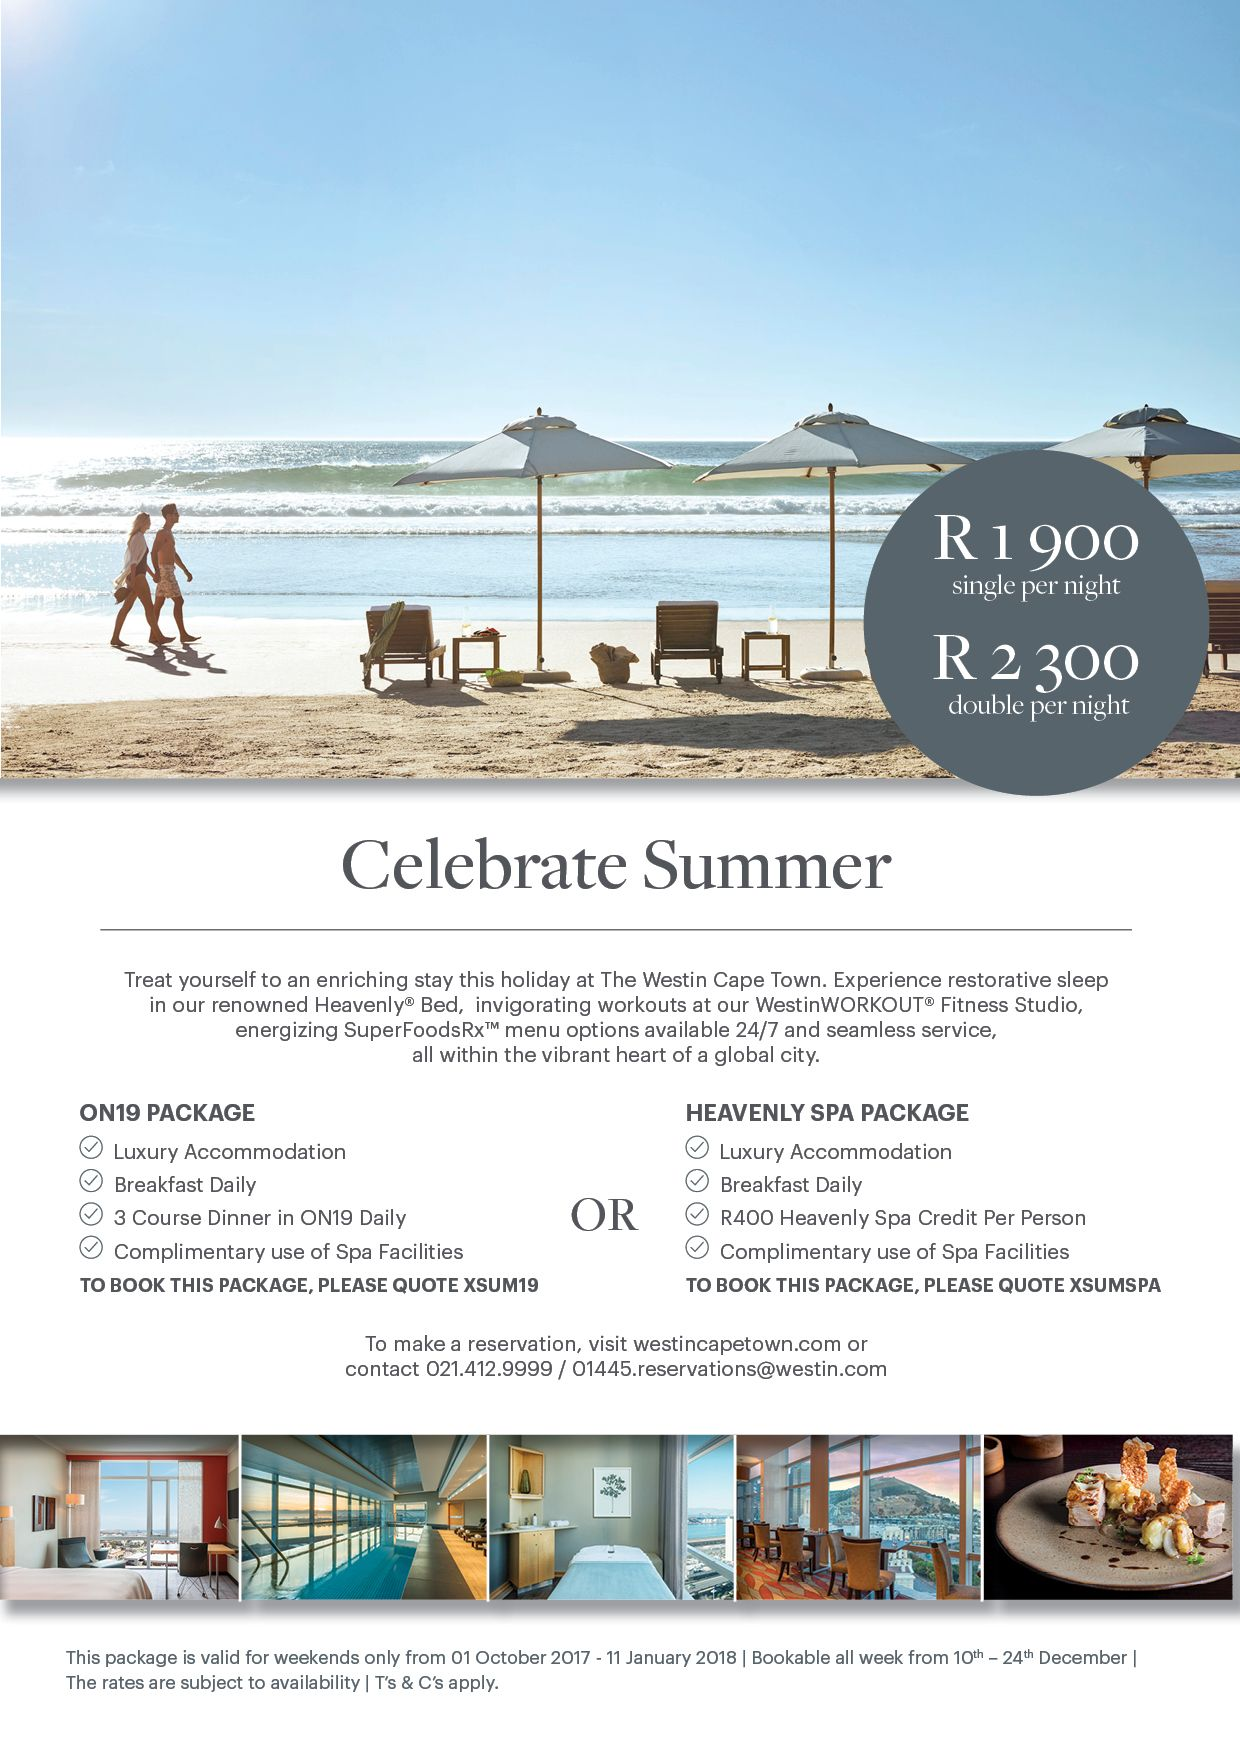 Westin Cape Town Offers: Celebrate Summer This Weekend